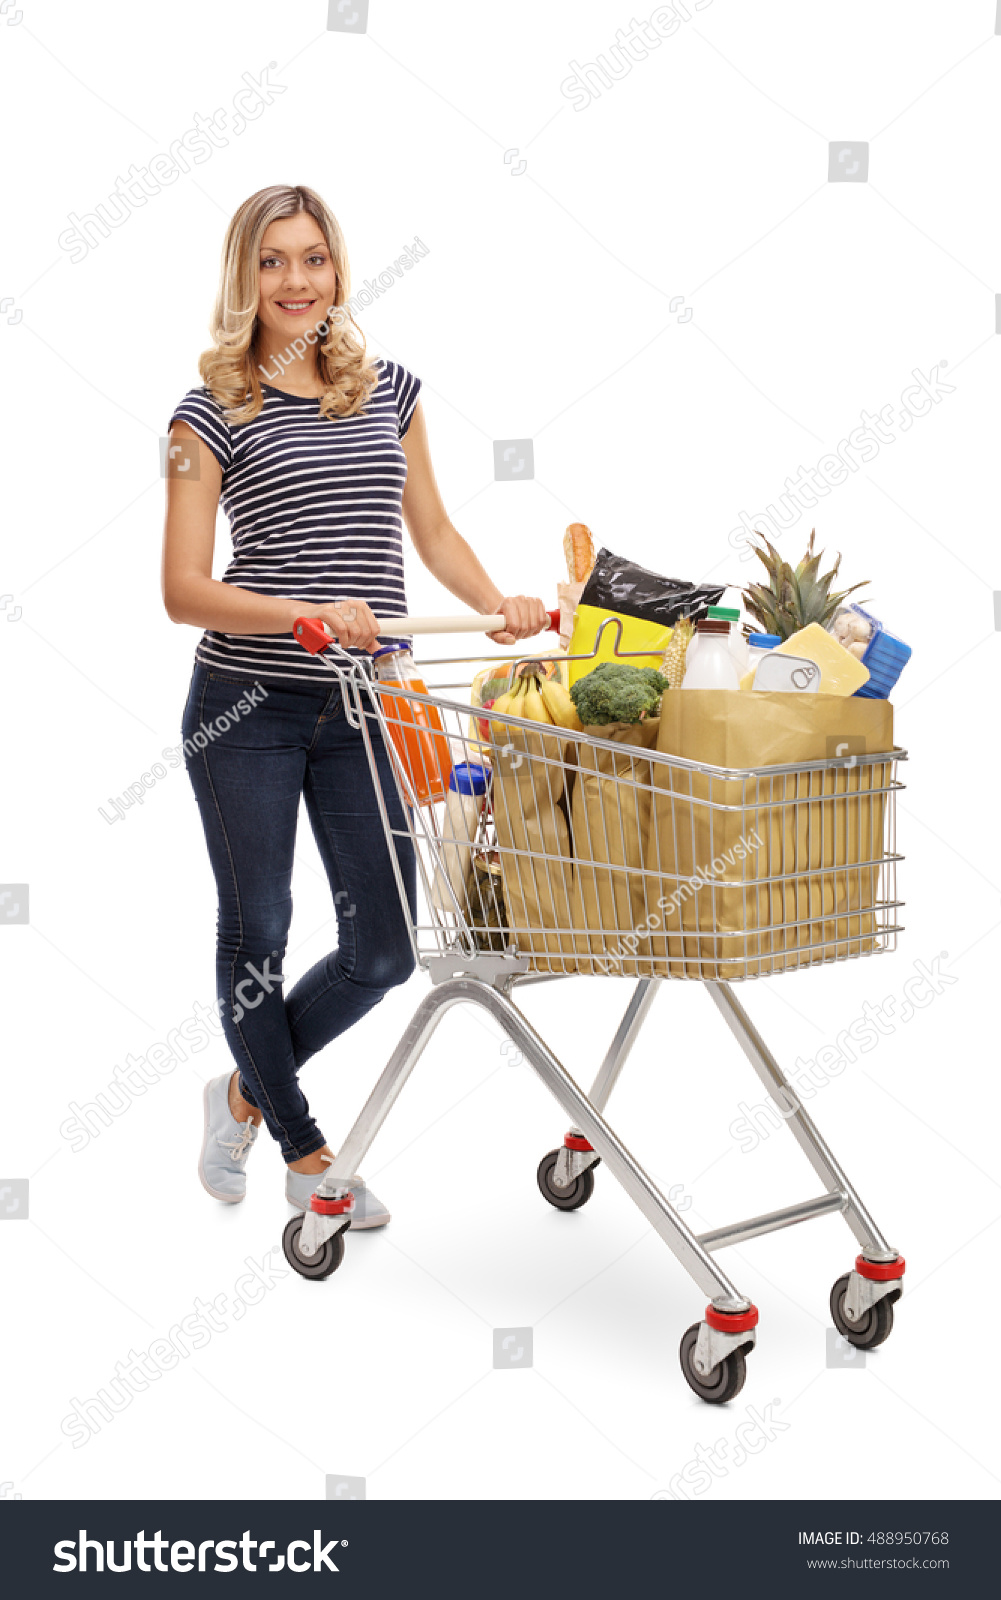 Woman posing with shopping bags isolated on white background full - Full Length Portrait Of A Woman Posing With A Shopping Cart Full Of Groceries Isolated On